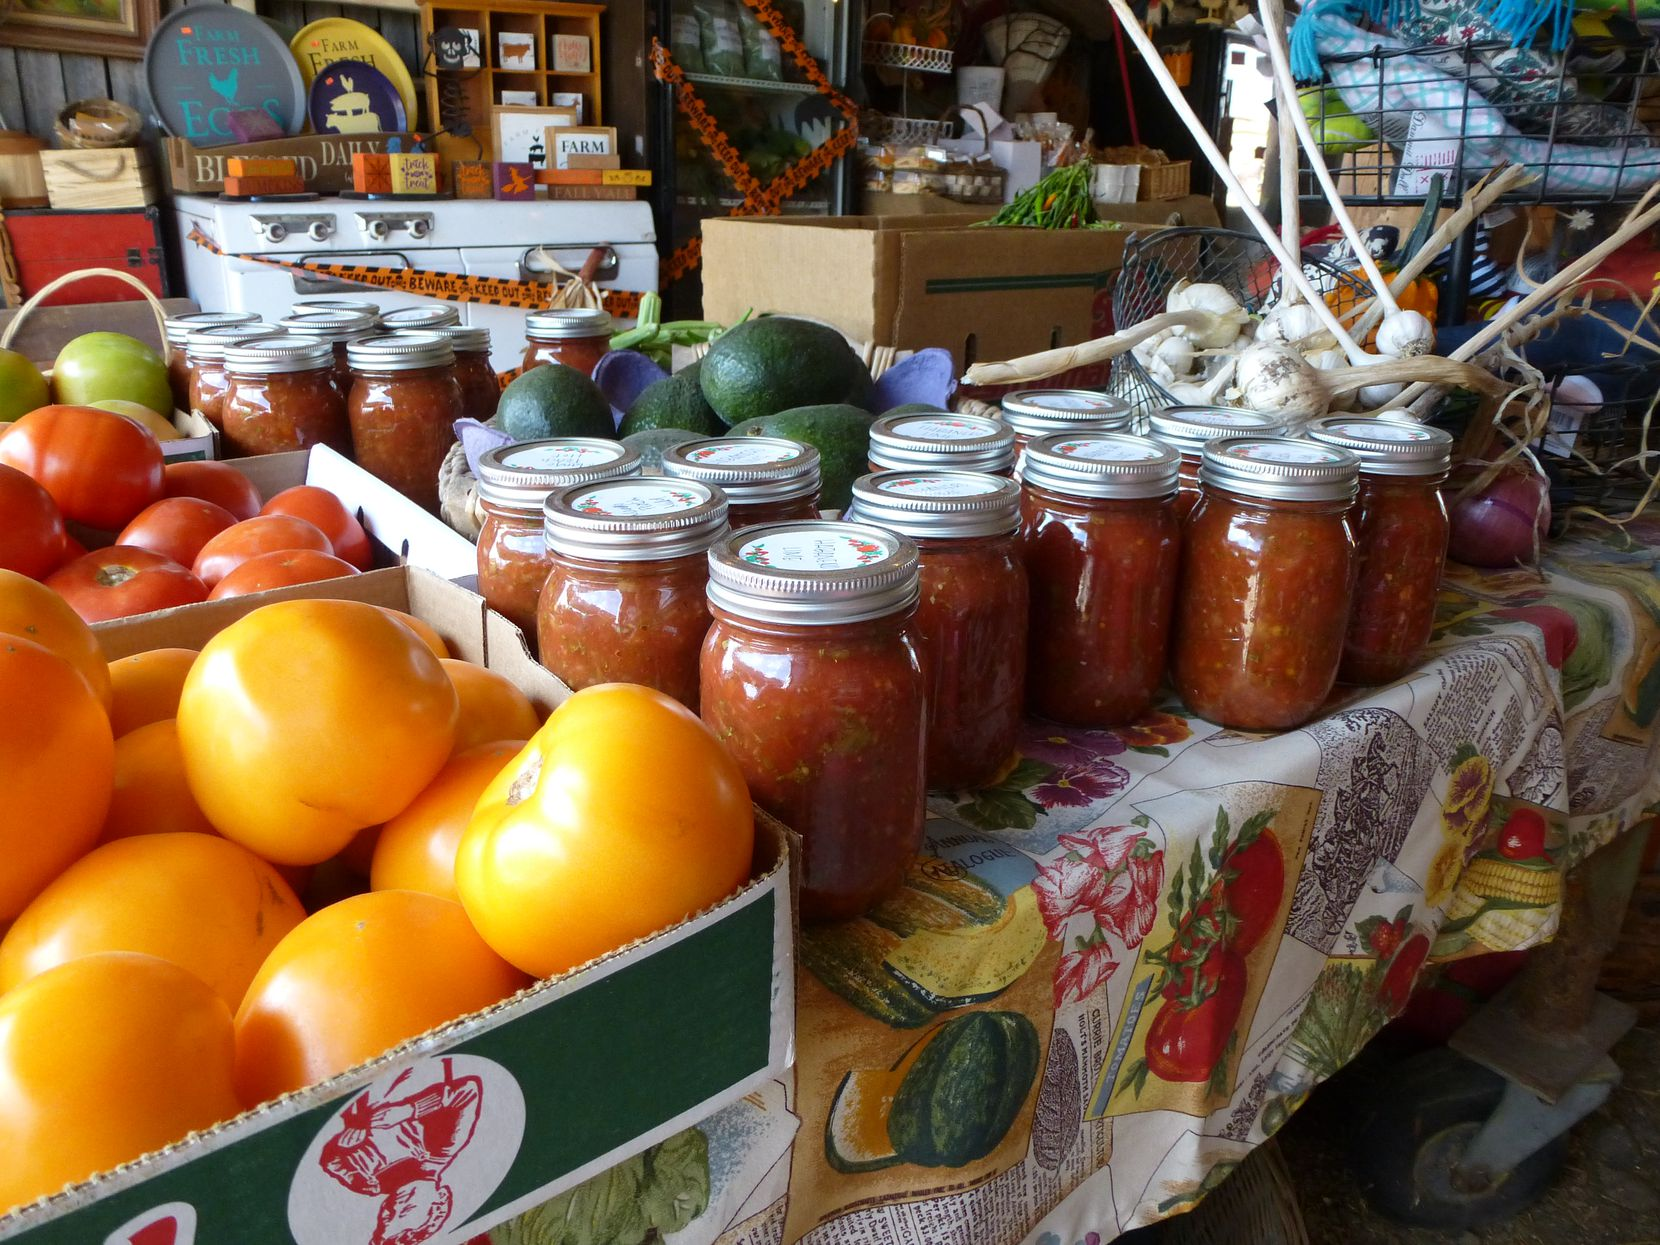 """Lola's Local Market in Melissa mixes up local and """"imported"""" produce, such as avocados and Tennessee tomatoes and house-made salsa."""